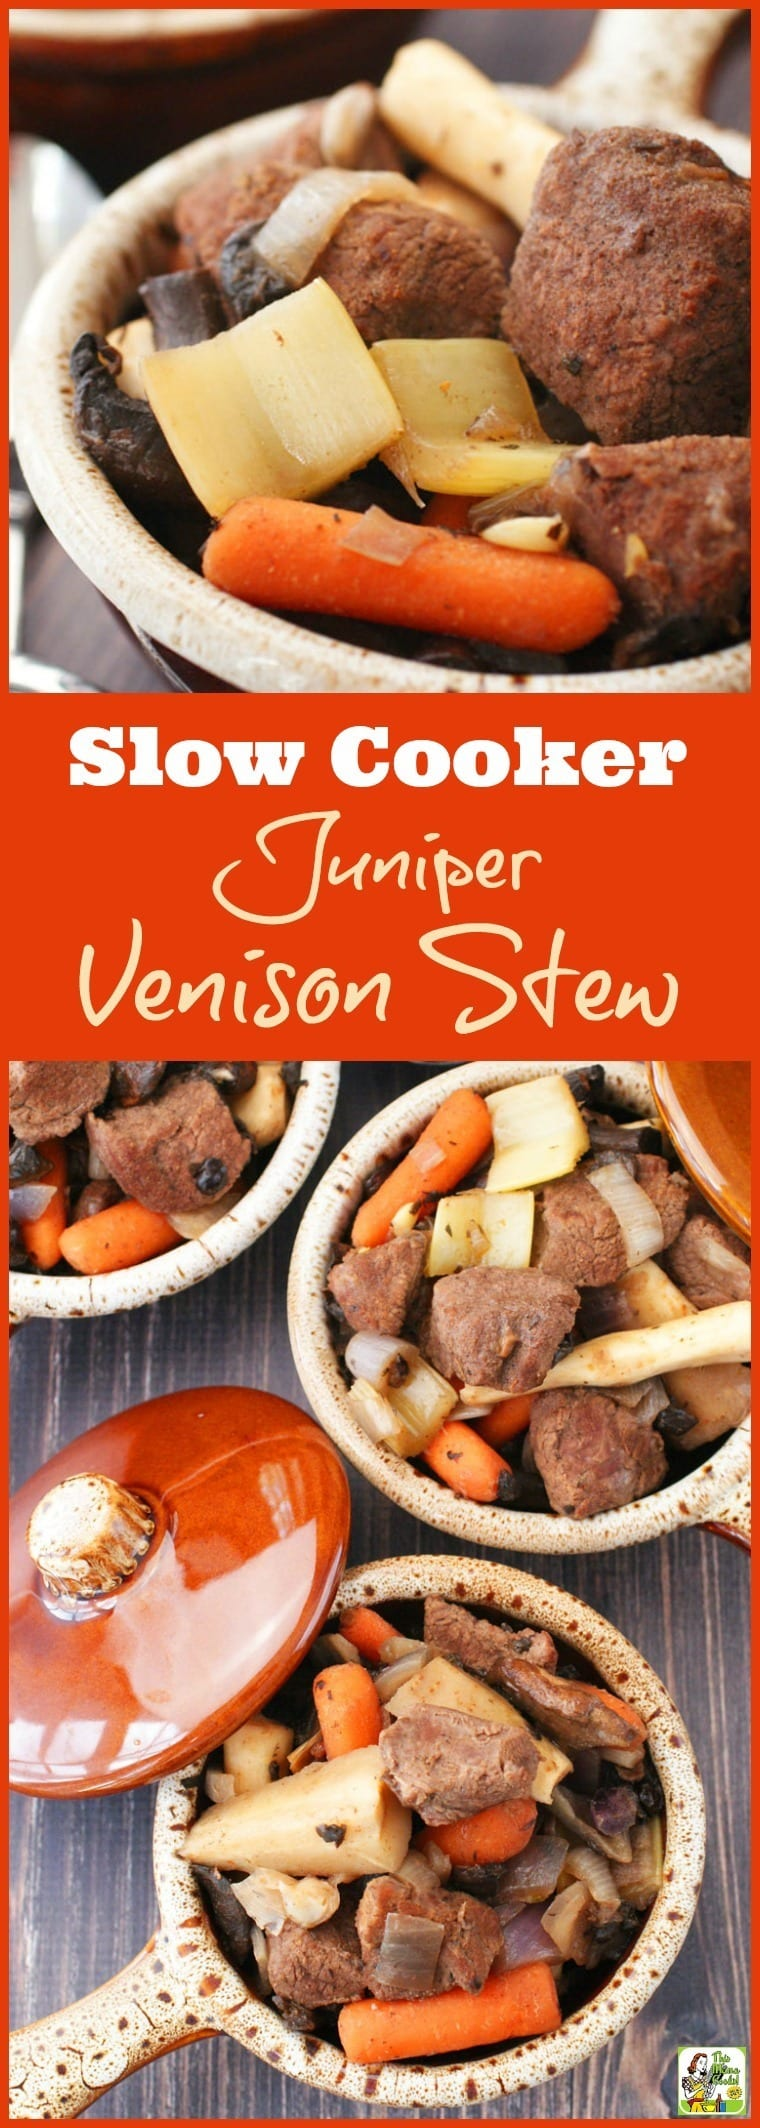 Looking for an easy crock-pot recipe that uses venison? Try this Slow Cooker Juniper Venison Stew recipe. It\'s gluten free, filled with vegetables, perfect for weeknight dinners, and easy to make. #slowcooker #crockpot #stew #venison #beef #meat #dinner #easydinner #recipe #easy #recipeoftheday #healthyrecipes #glutenfree #easyrecipes